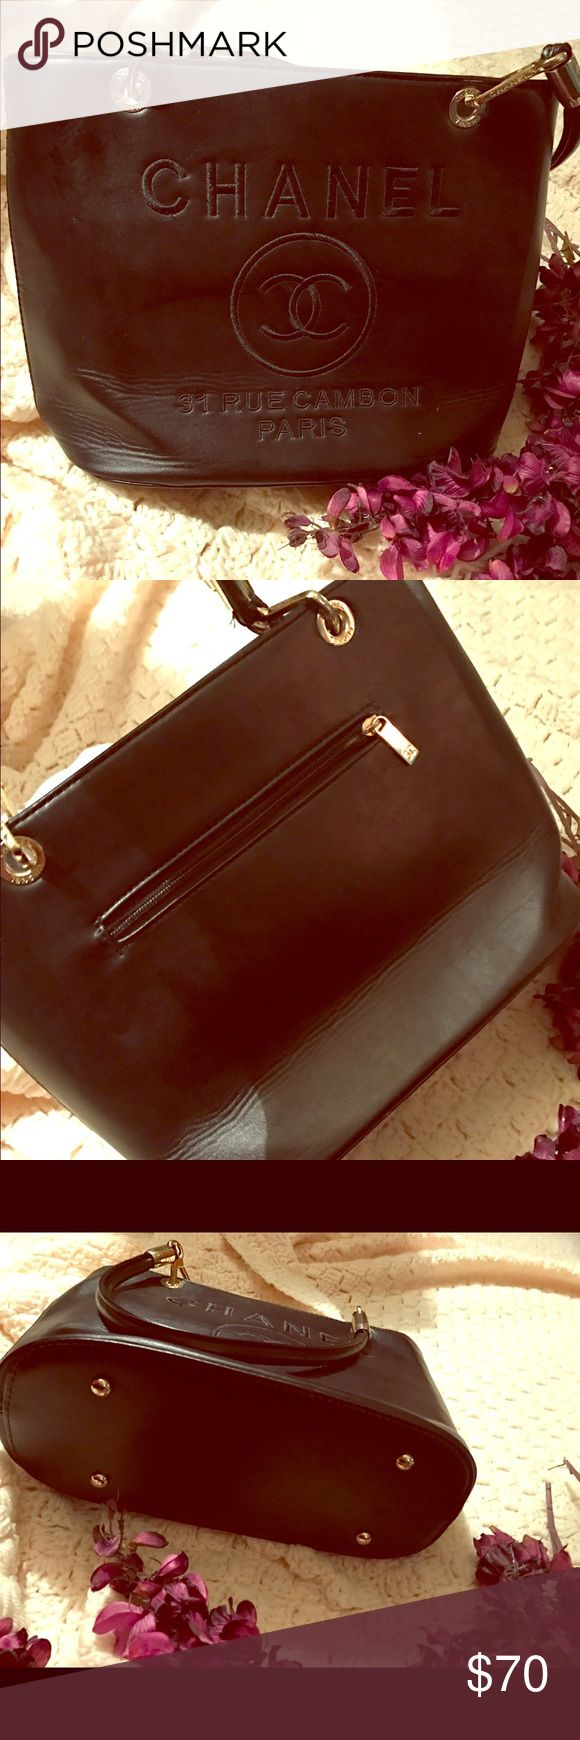 """❗SALE❗NO BRAND (CHANEL) Purse⭐ This pre-loved bag was bought from another posher! In perfect condition no tearing or stains on exterior or tears on the interior! Had two slip pockets and one zipper enclosure. The top zips shut! 😍 I just like a big bag!! Only reason why I'm looking to re-sell 🙂 14"""" W x 9.5"""" Tall x 5"""" Deep. 9.5"""" drop handles. Price says the obvious! Thank you for stopping by ❤ Bags Shoulder Bags"""